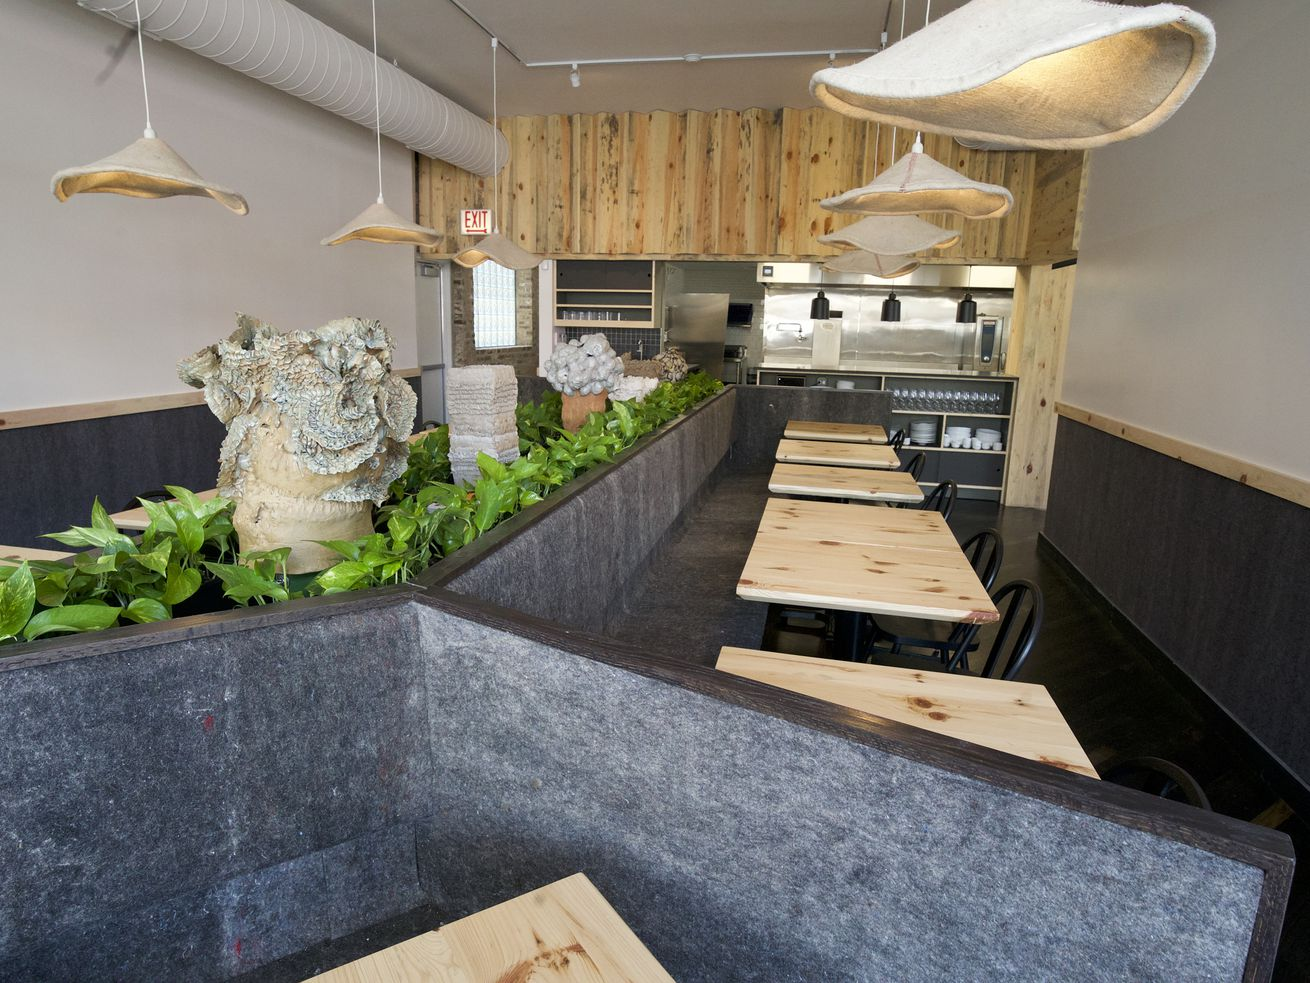 Wherewithall, the follow-up to MIchelin-starred Parachute, should open by the end of July.